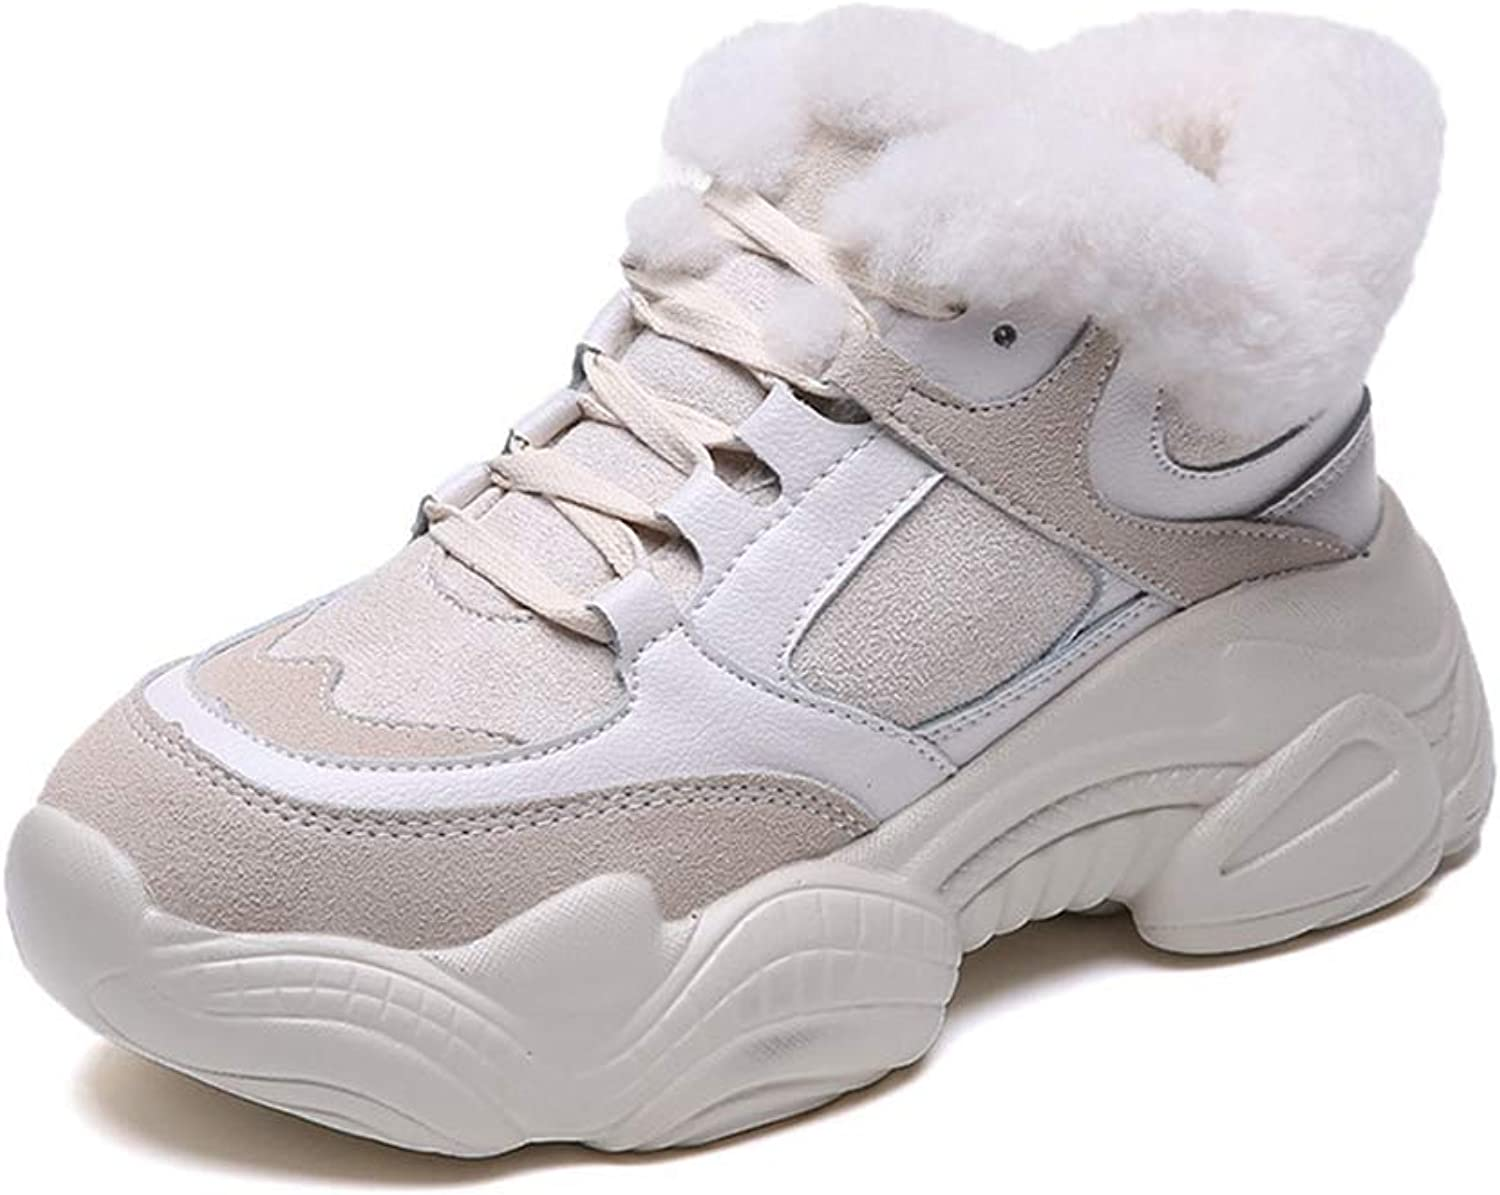 T-JULY Women Fashion Flock Comfortable Casual Plush Winter shoes Wedges Tenis Sneakers